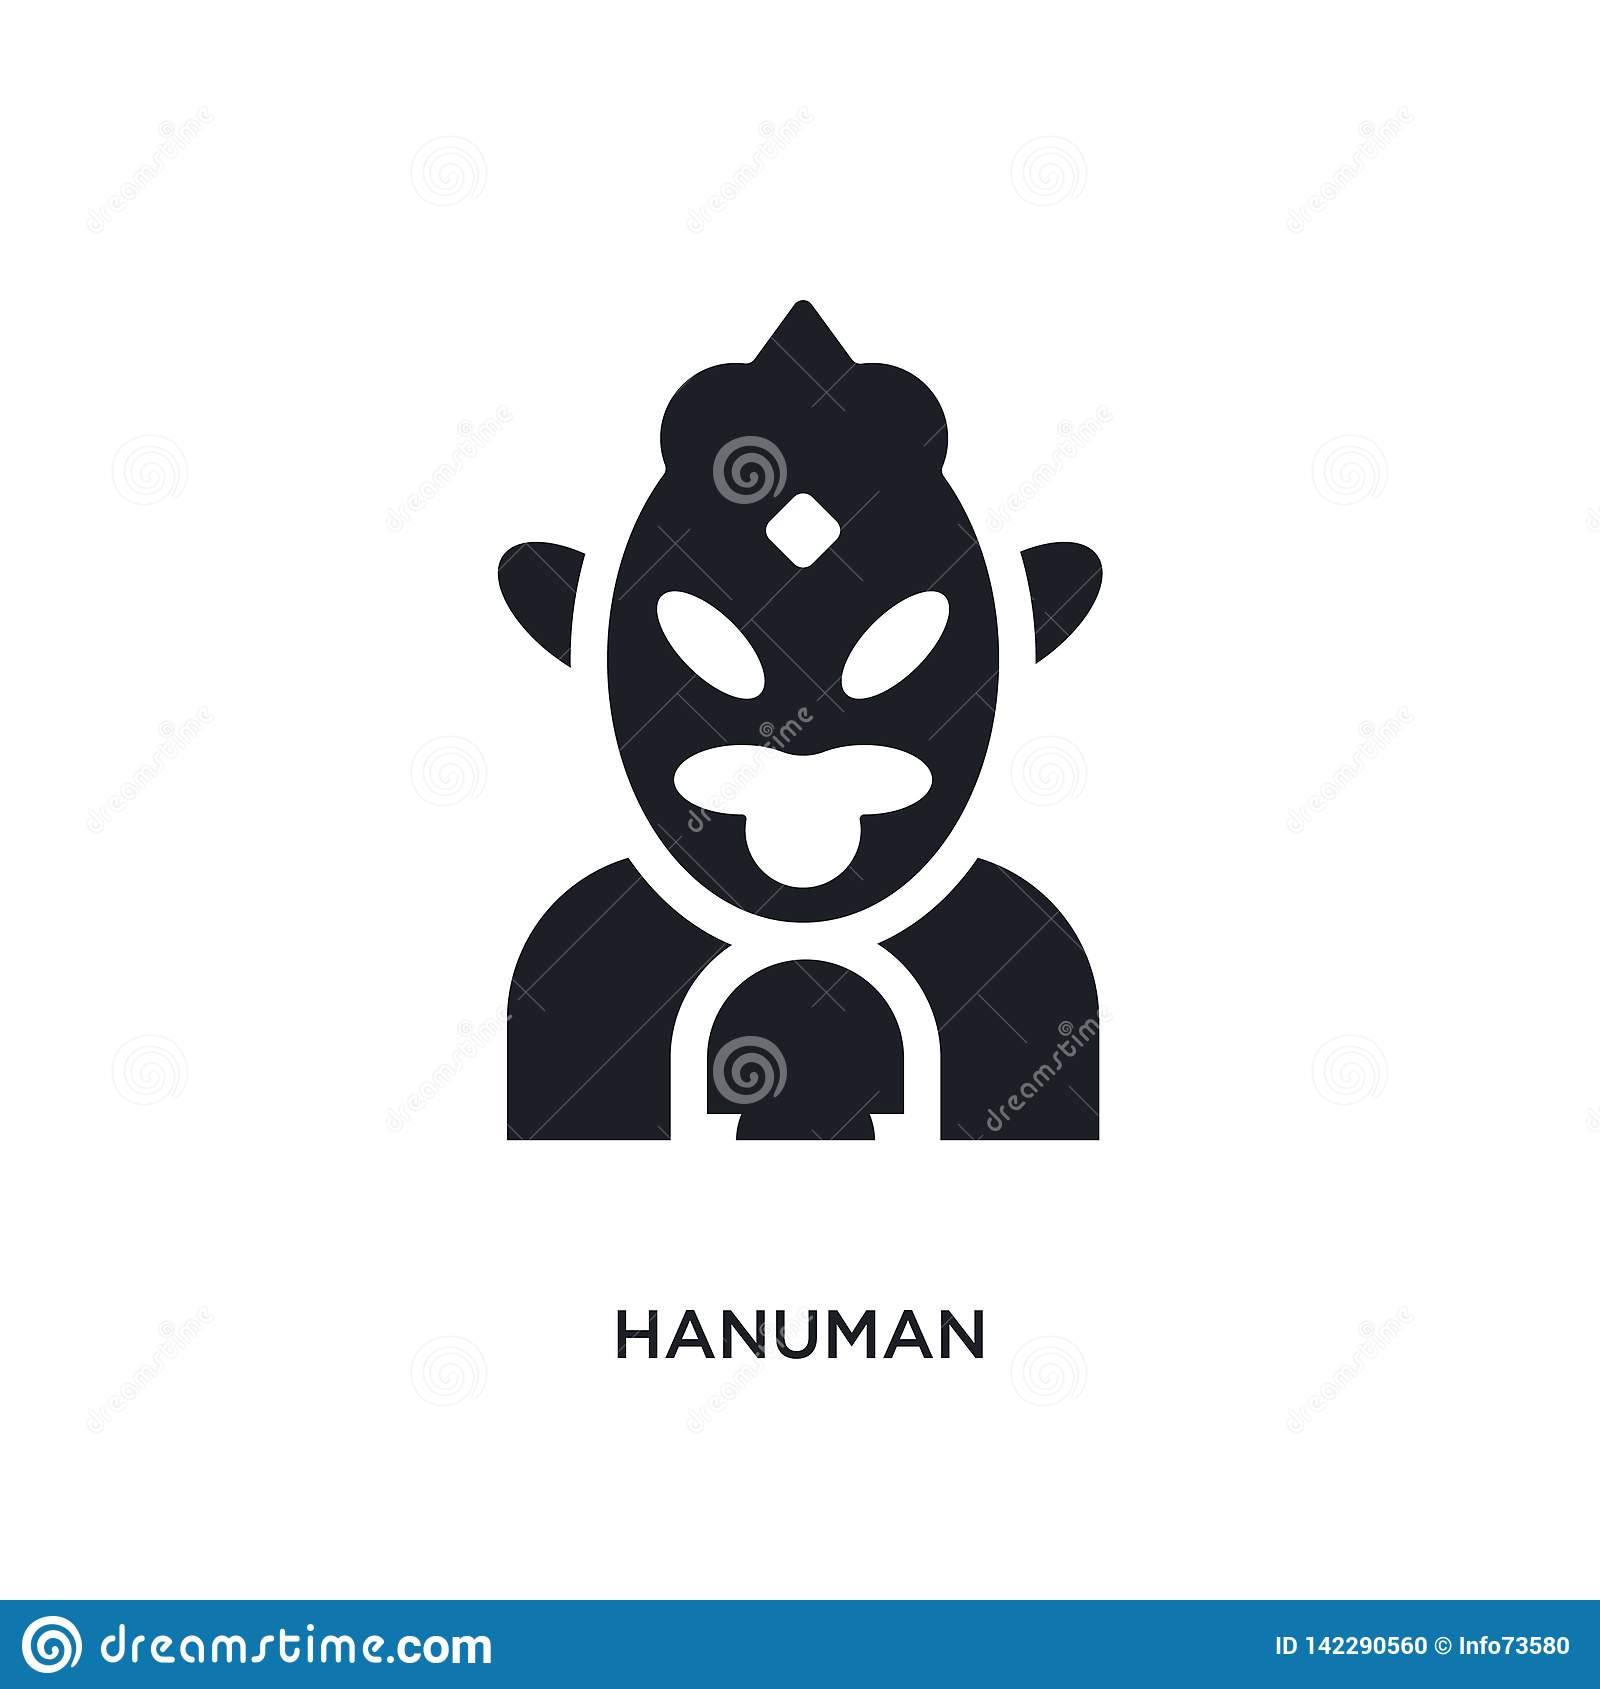 hanuman isolated icon. simple element illustration from india concept icons. hanuman editable logo sign symbol design on white